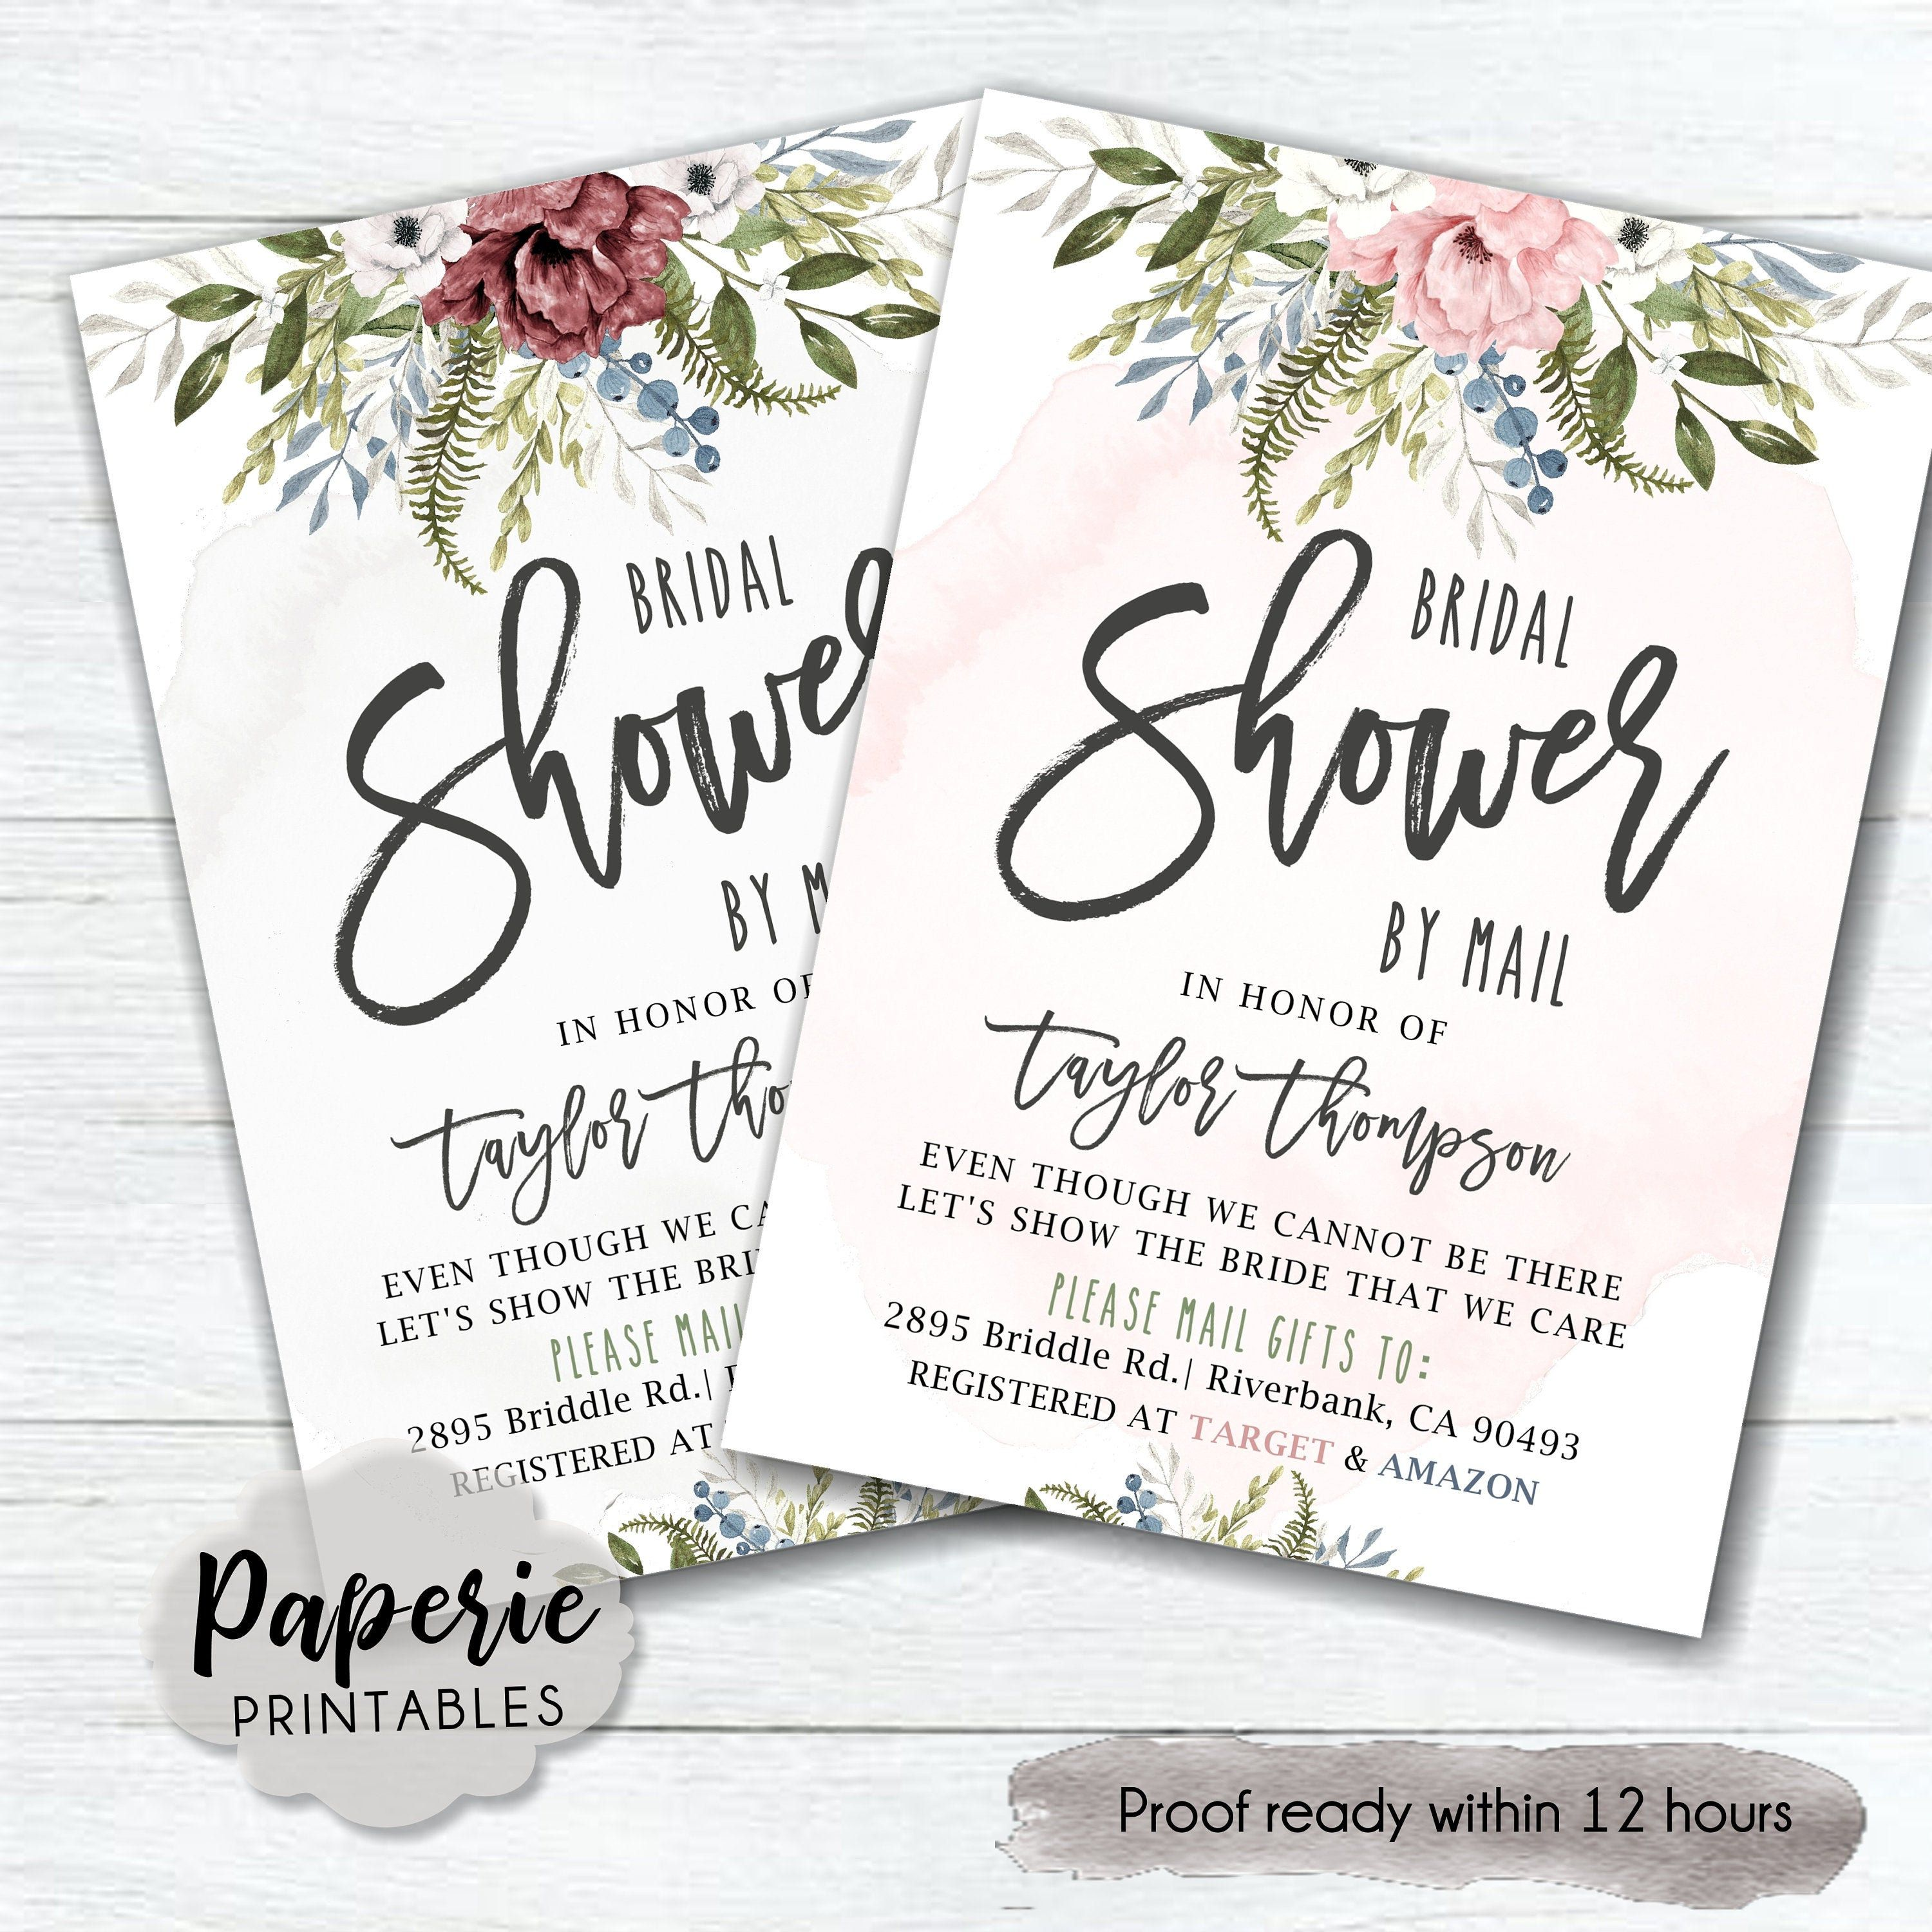 Bridal Shower By Mail Invitation Long Distance Bridal Shower Etsy In 2020 Long Distance Baby Shower Invitations Invitations Baby Shower Invitations